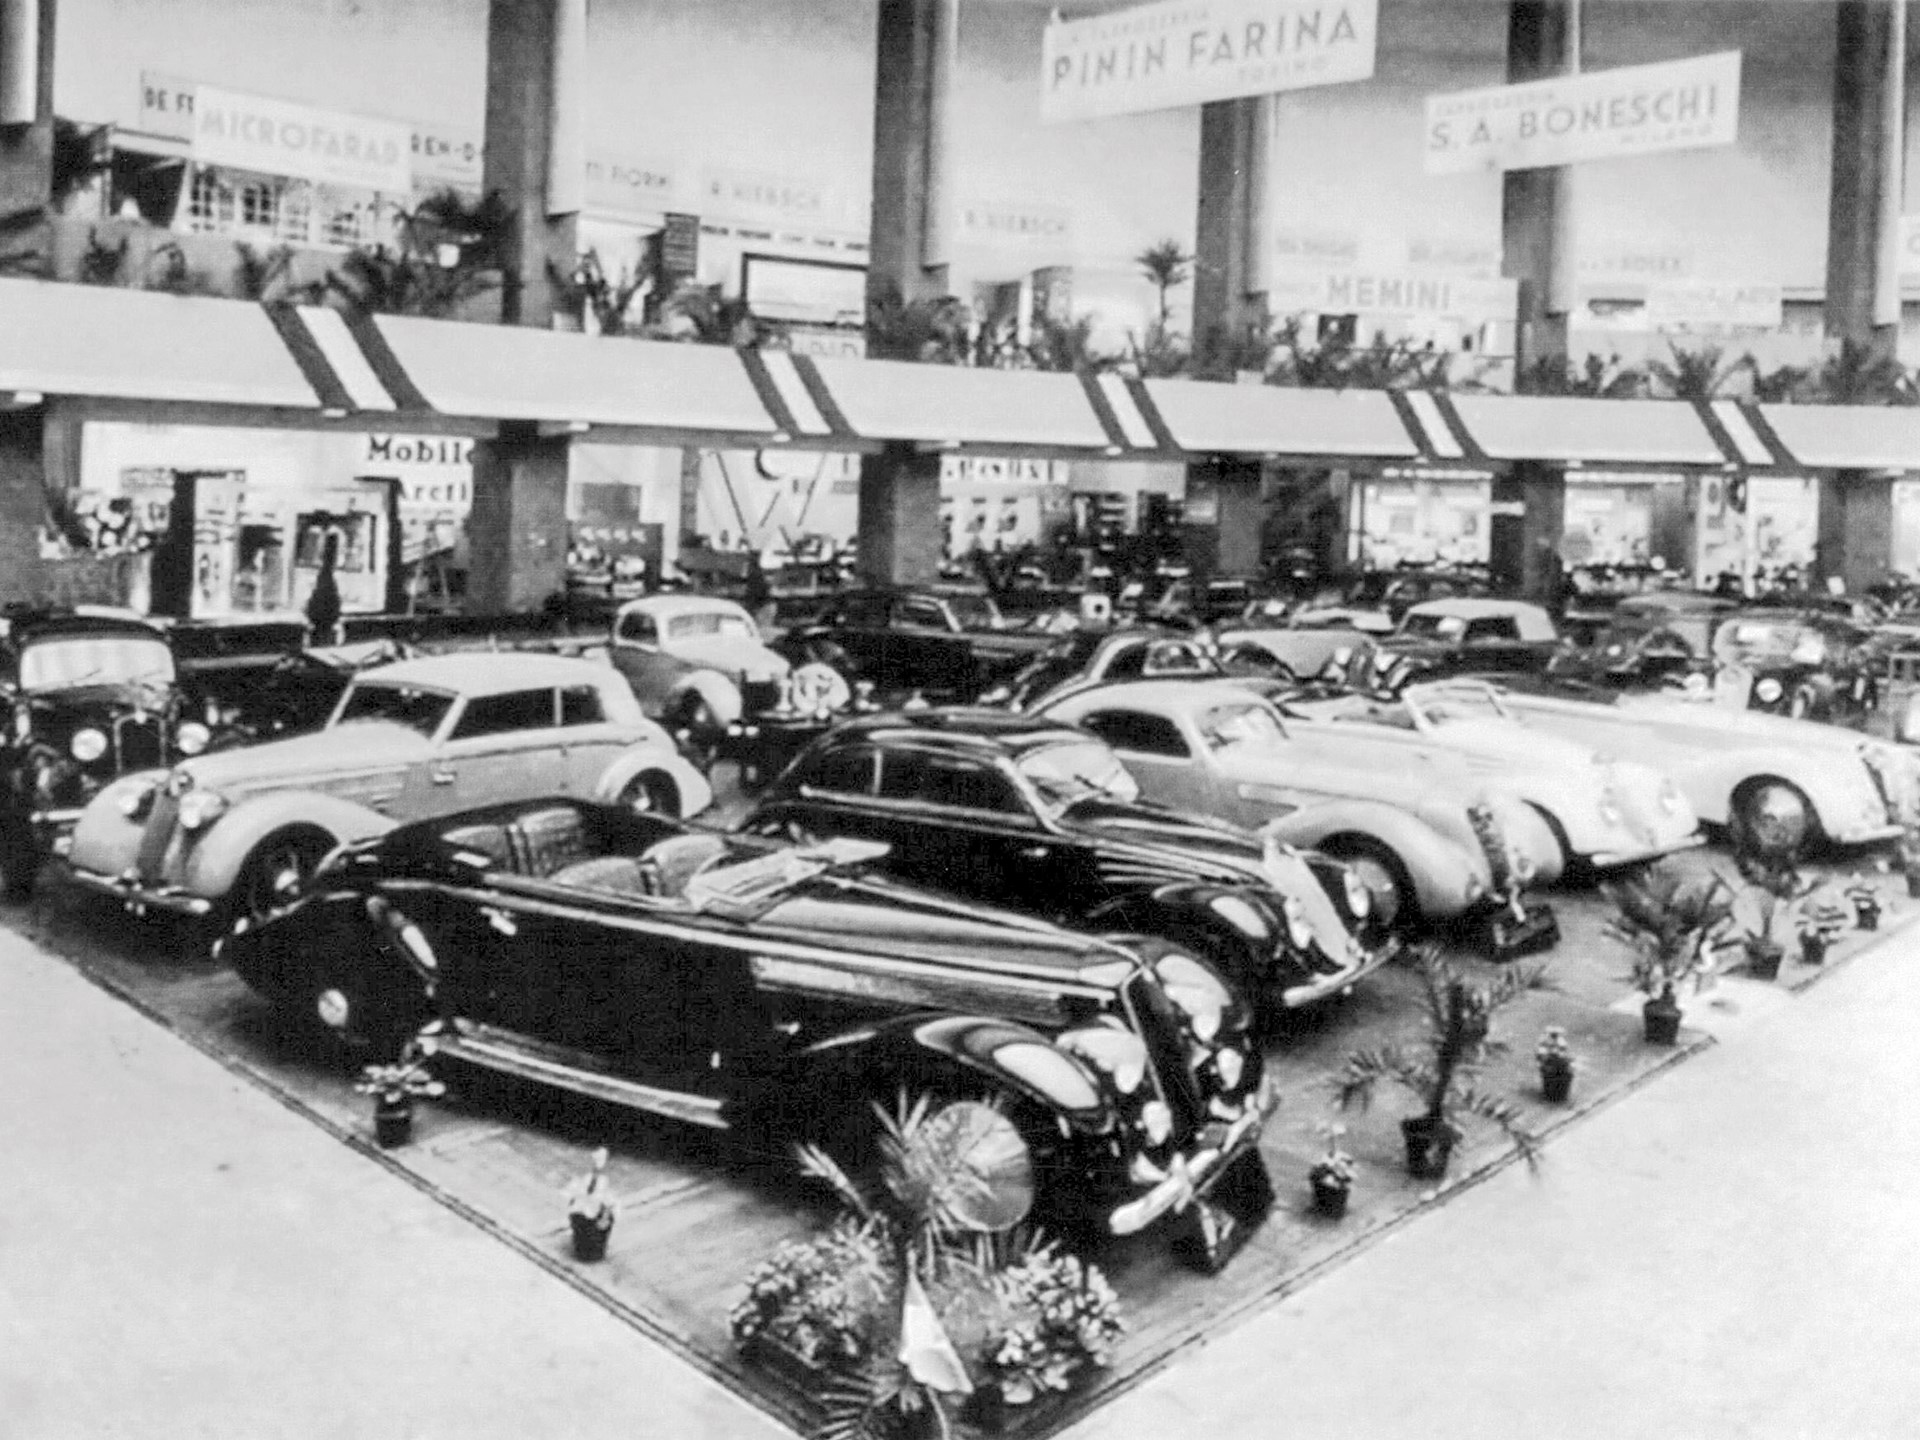 This cabriolet, front row, far right, on the Pinin Farina stand at the 1936 Milan Salon.